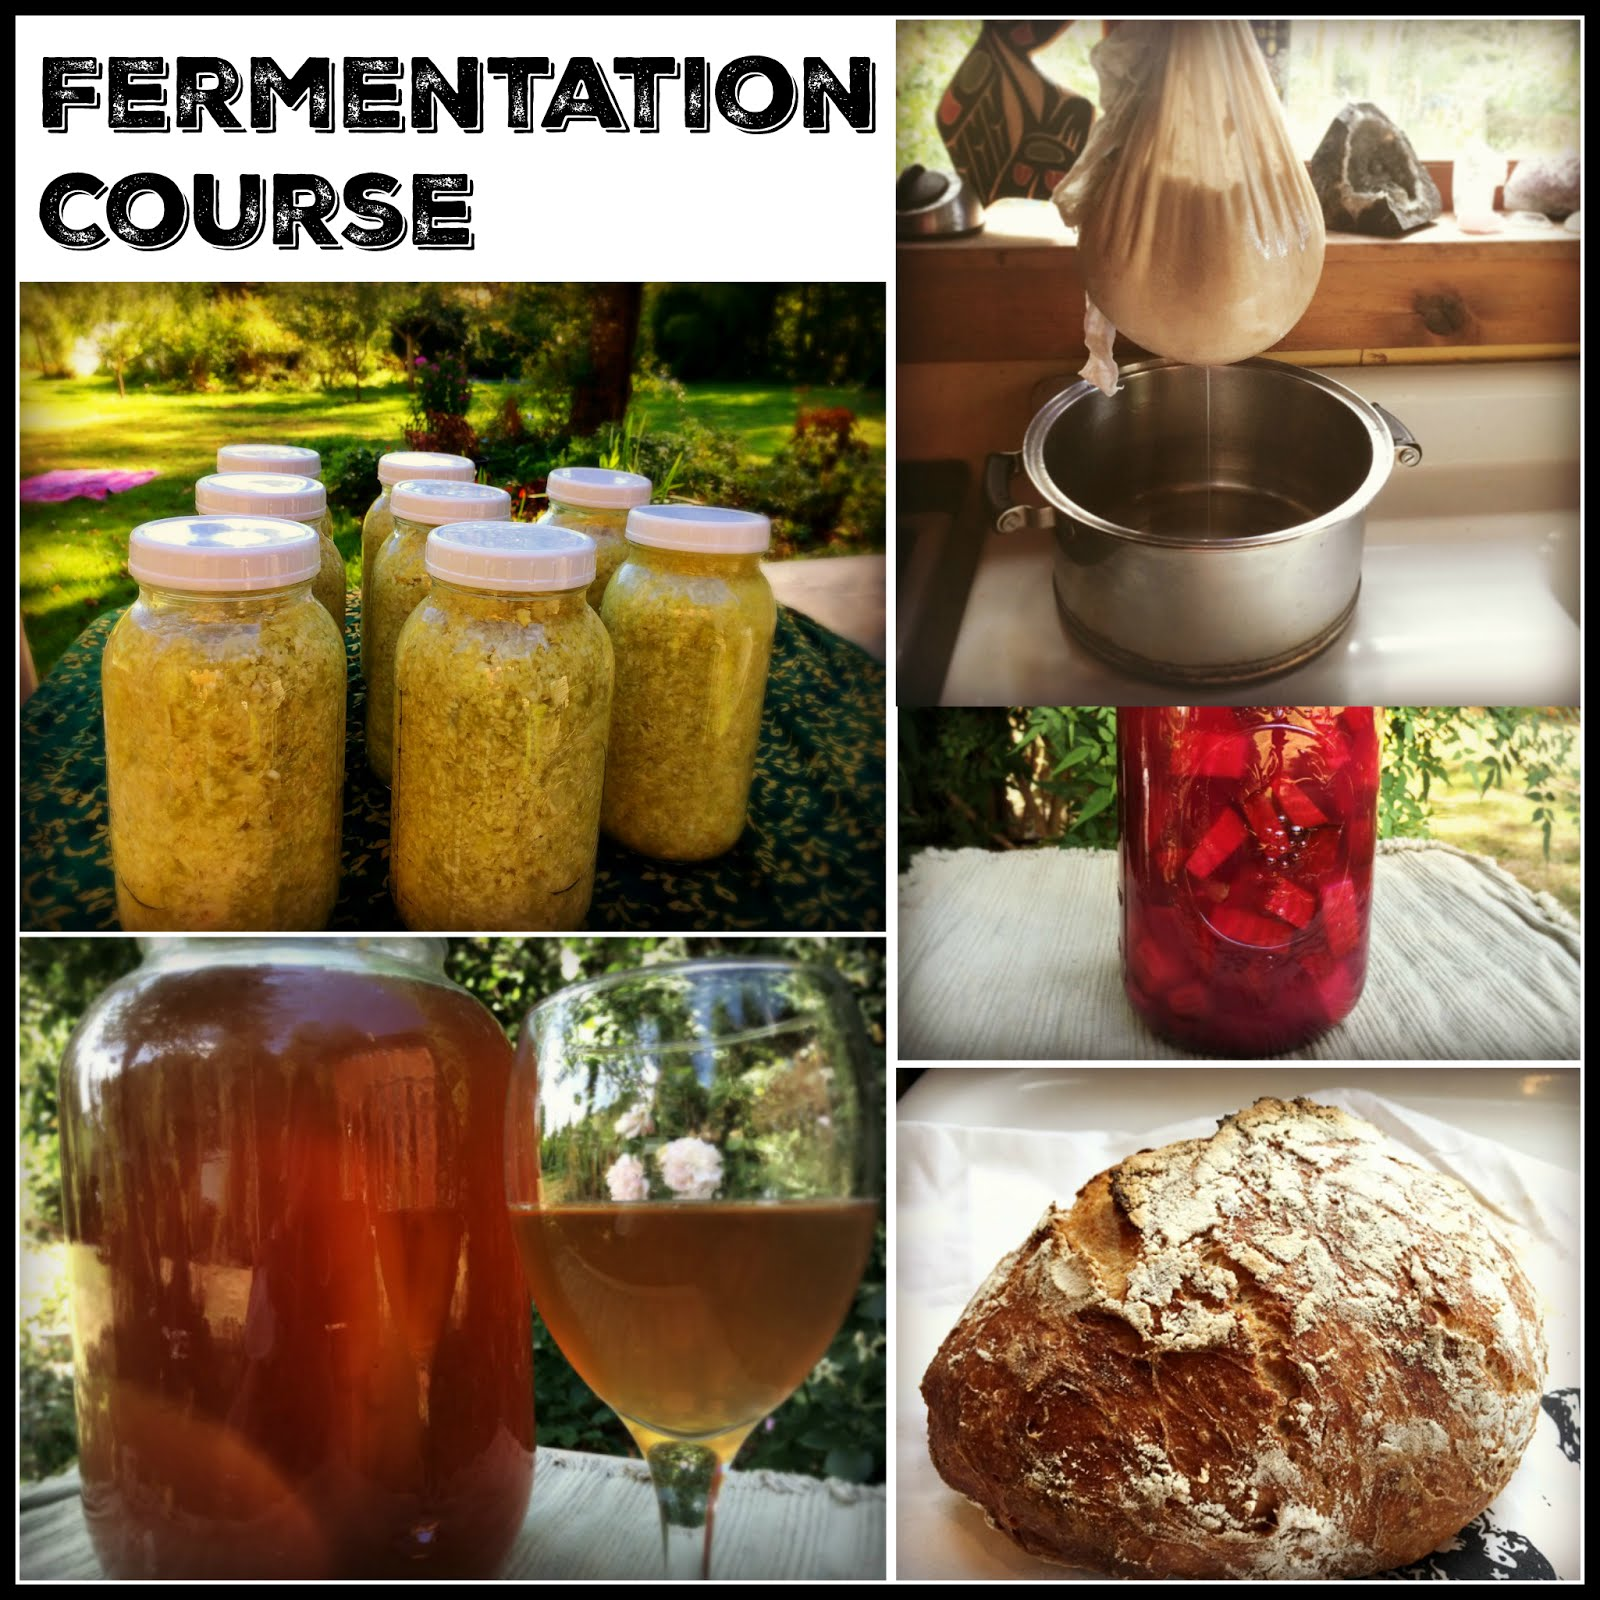 Coming soon - Online fermentation course